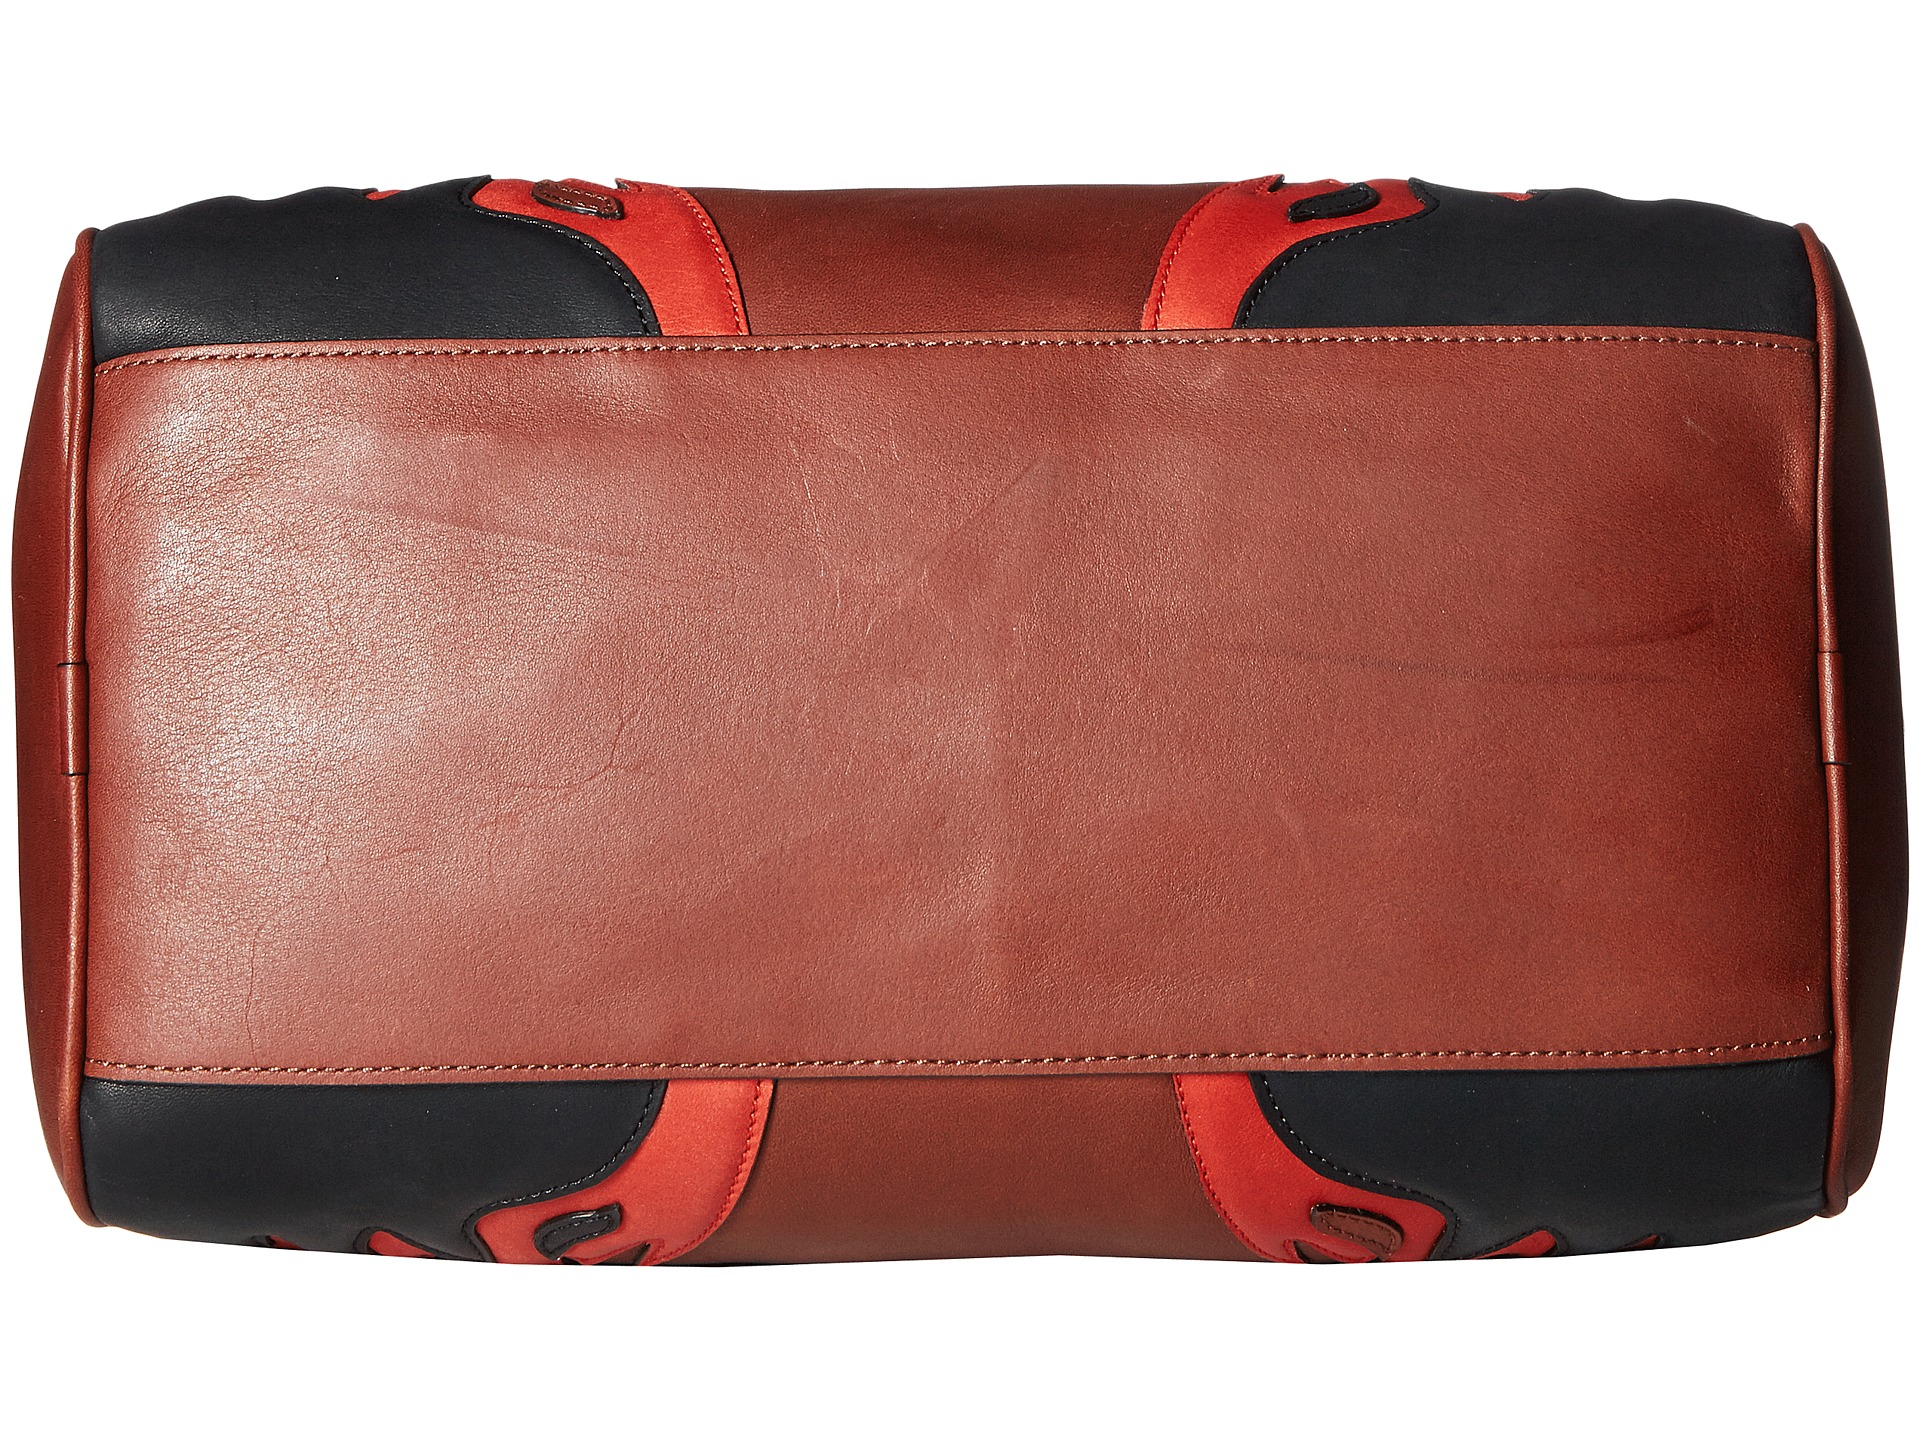 Just Cavalli Calf Leather with Fires Crossbody at 6pm.com